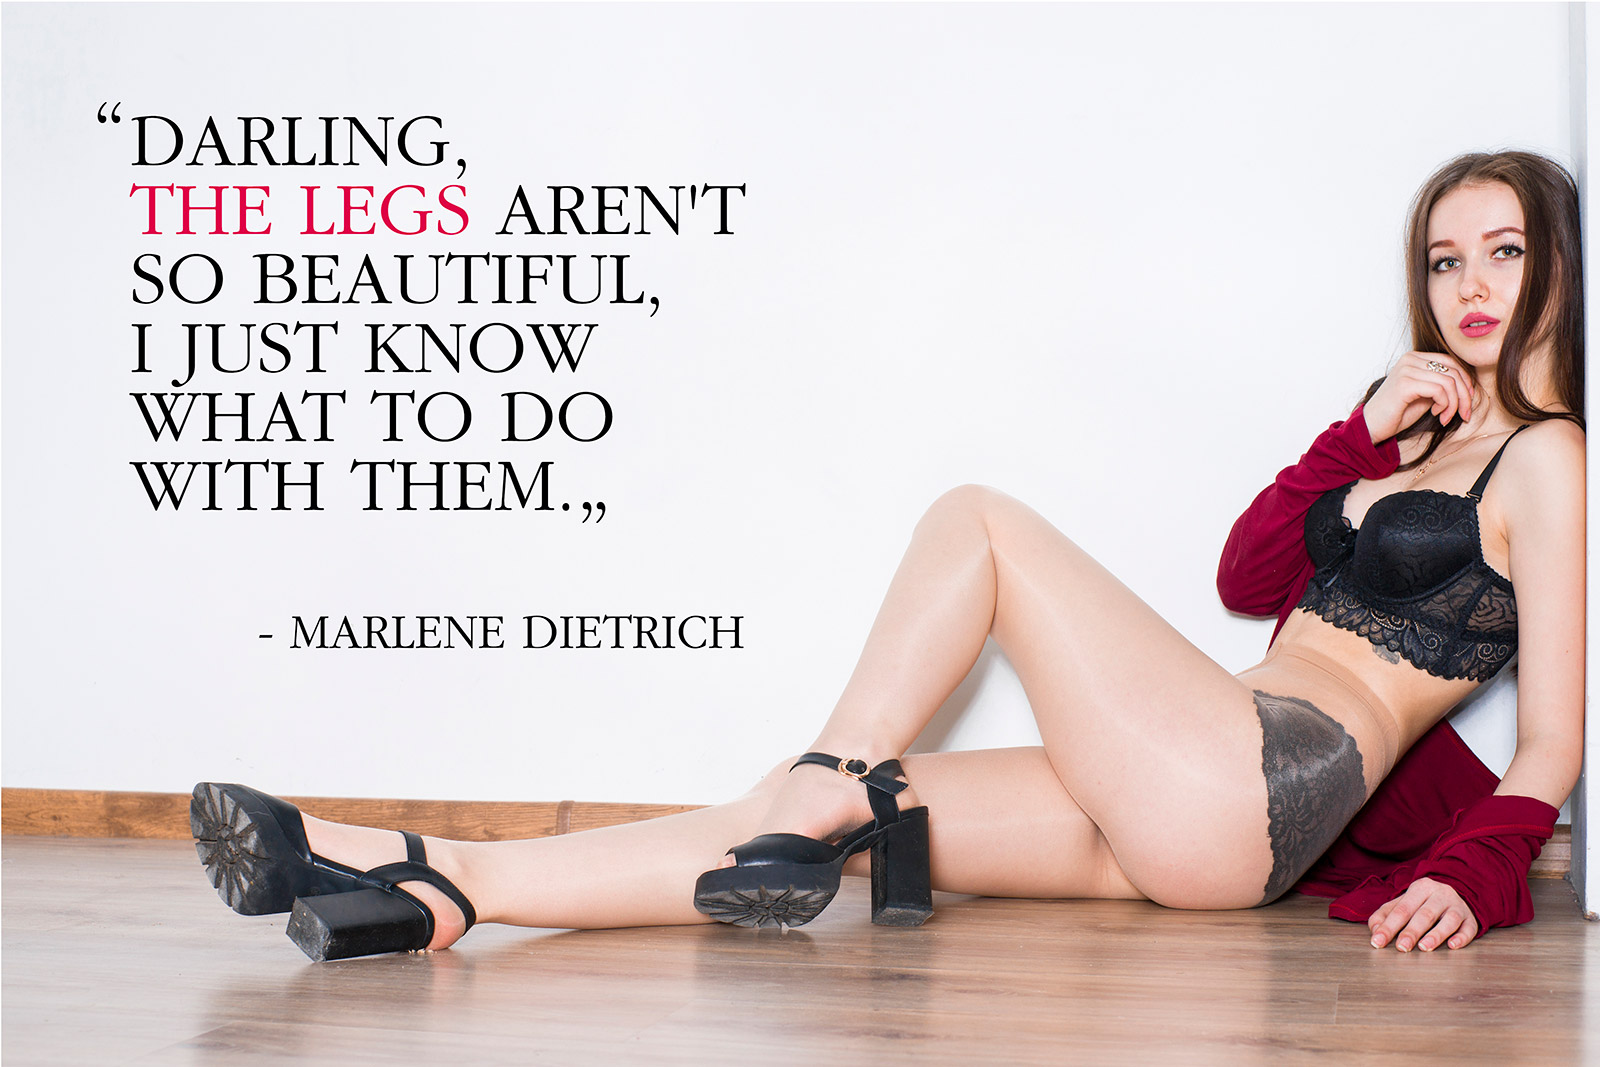 Darling, the legs aren't so beautiful, I just know what to do with them - Marlene Dietrich